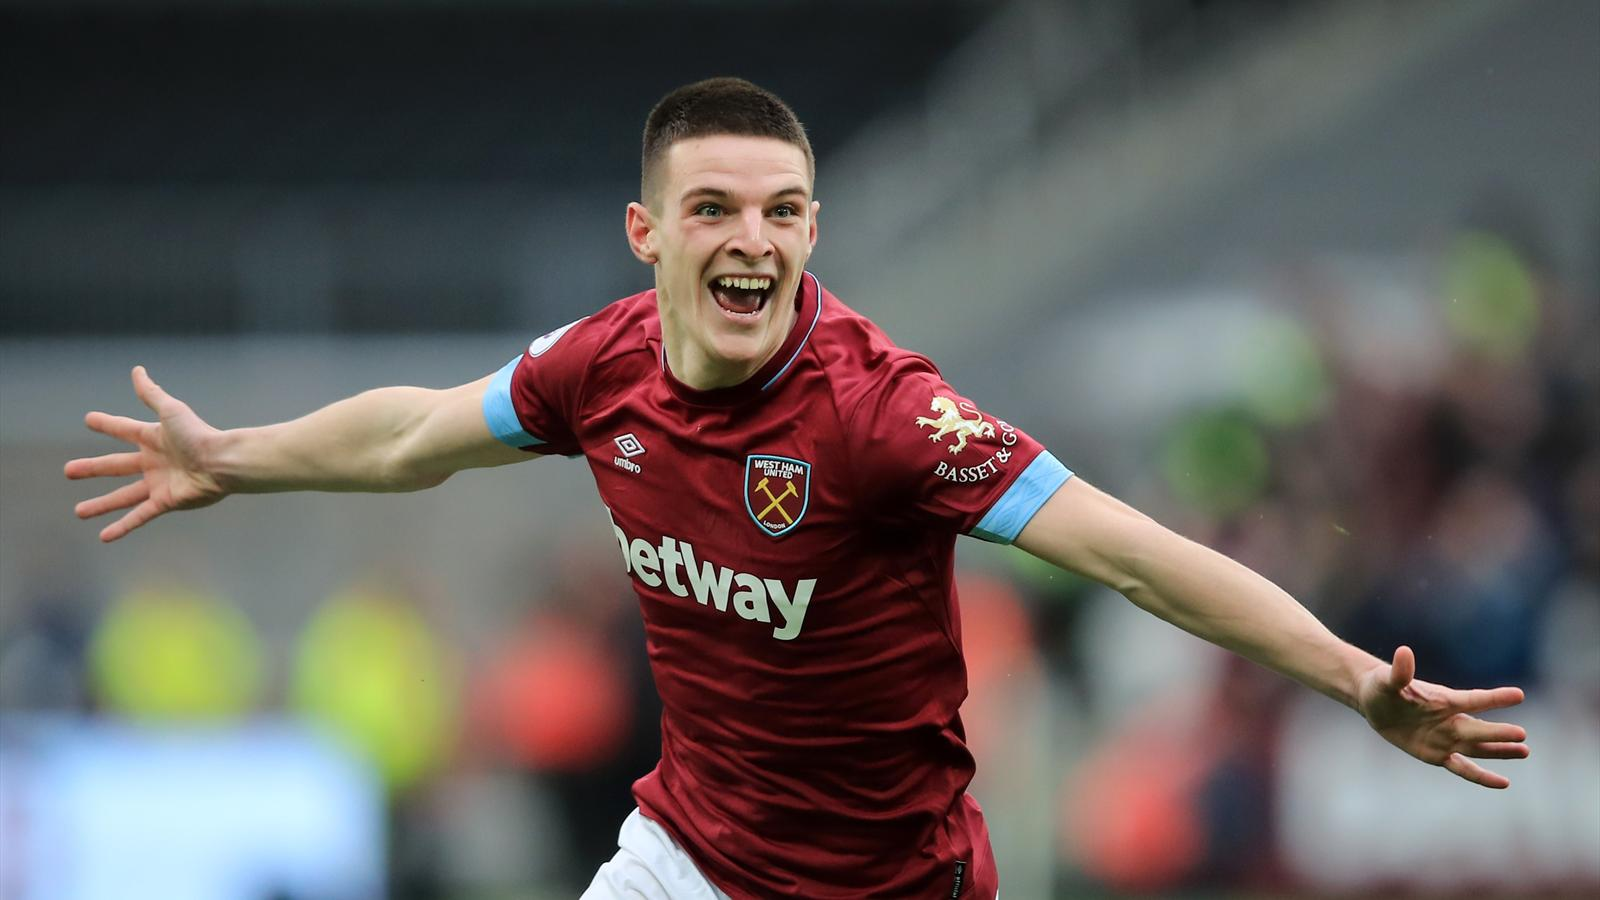 Football news - Declan Rice hits winner as West Ham United sink Arsenal - Premier League 2018 ...